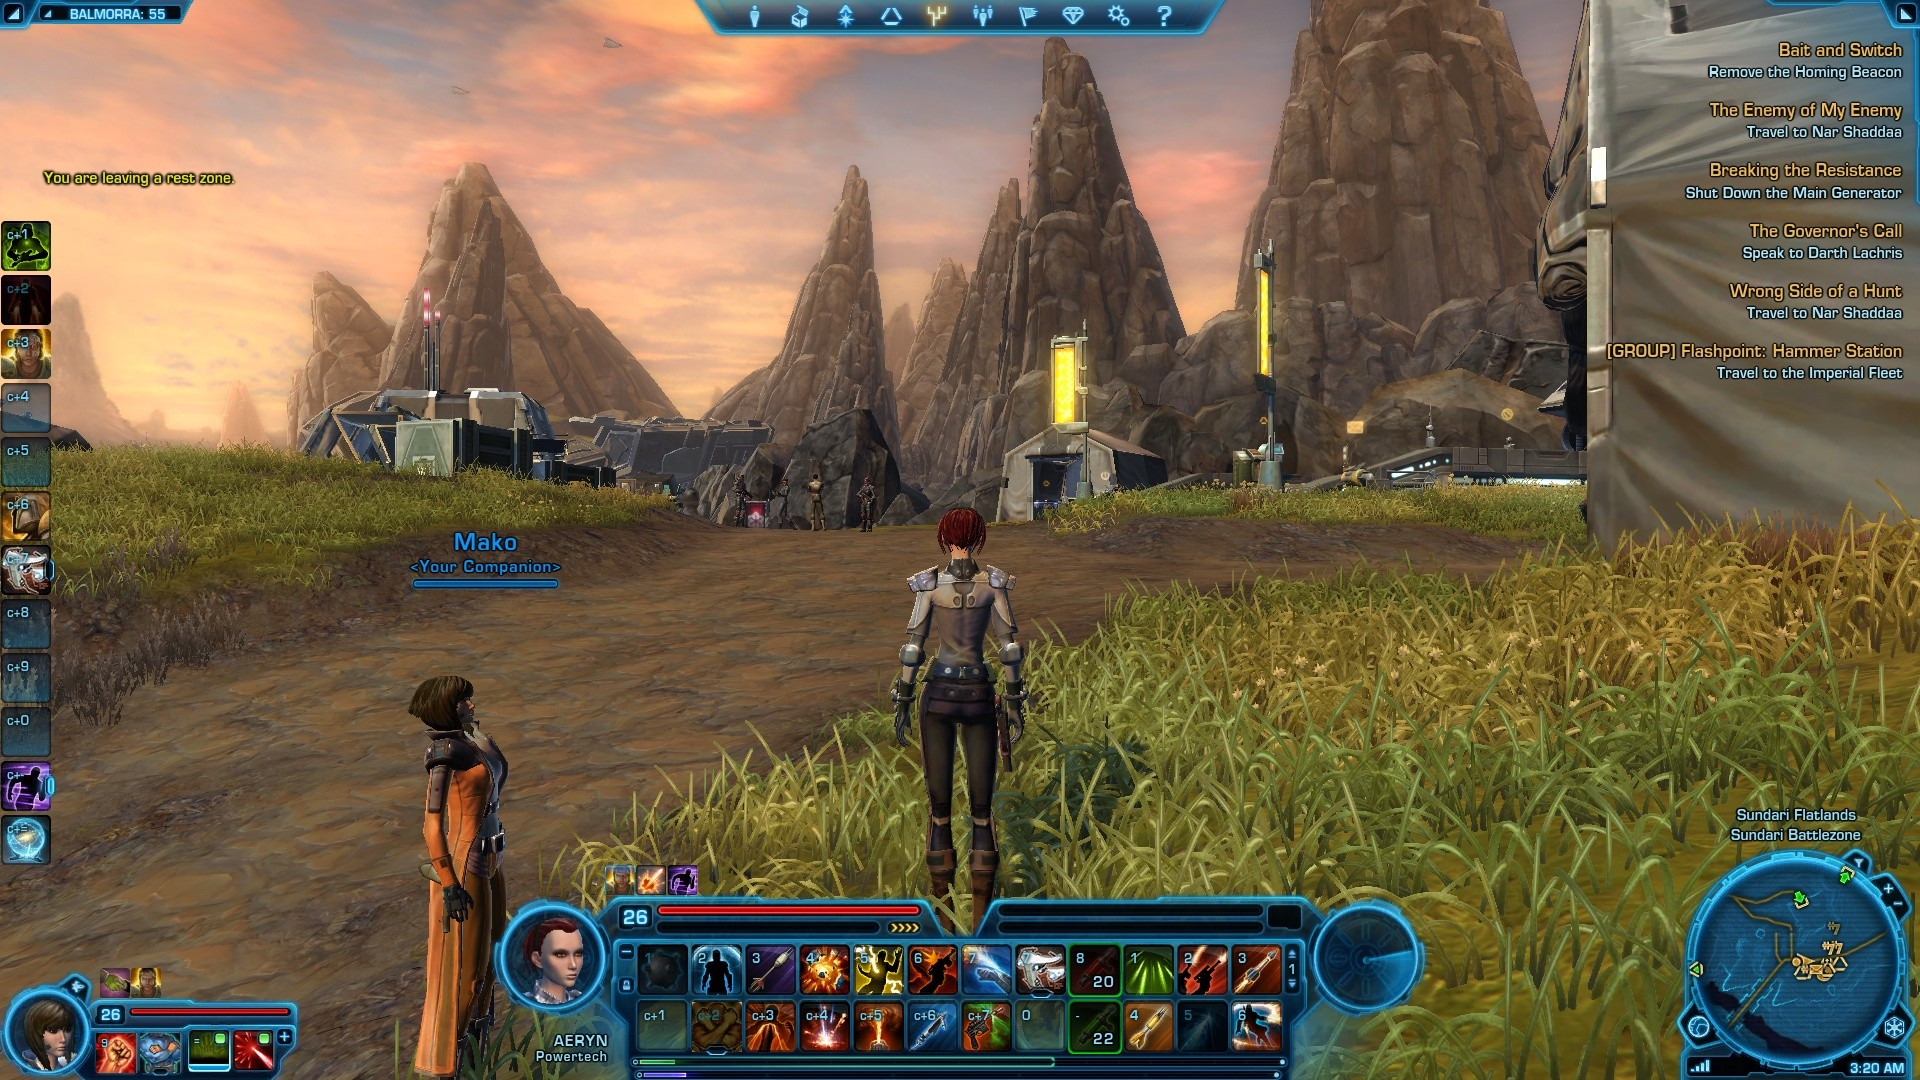 Star Wars: The Old Republic - Note the time